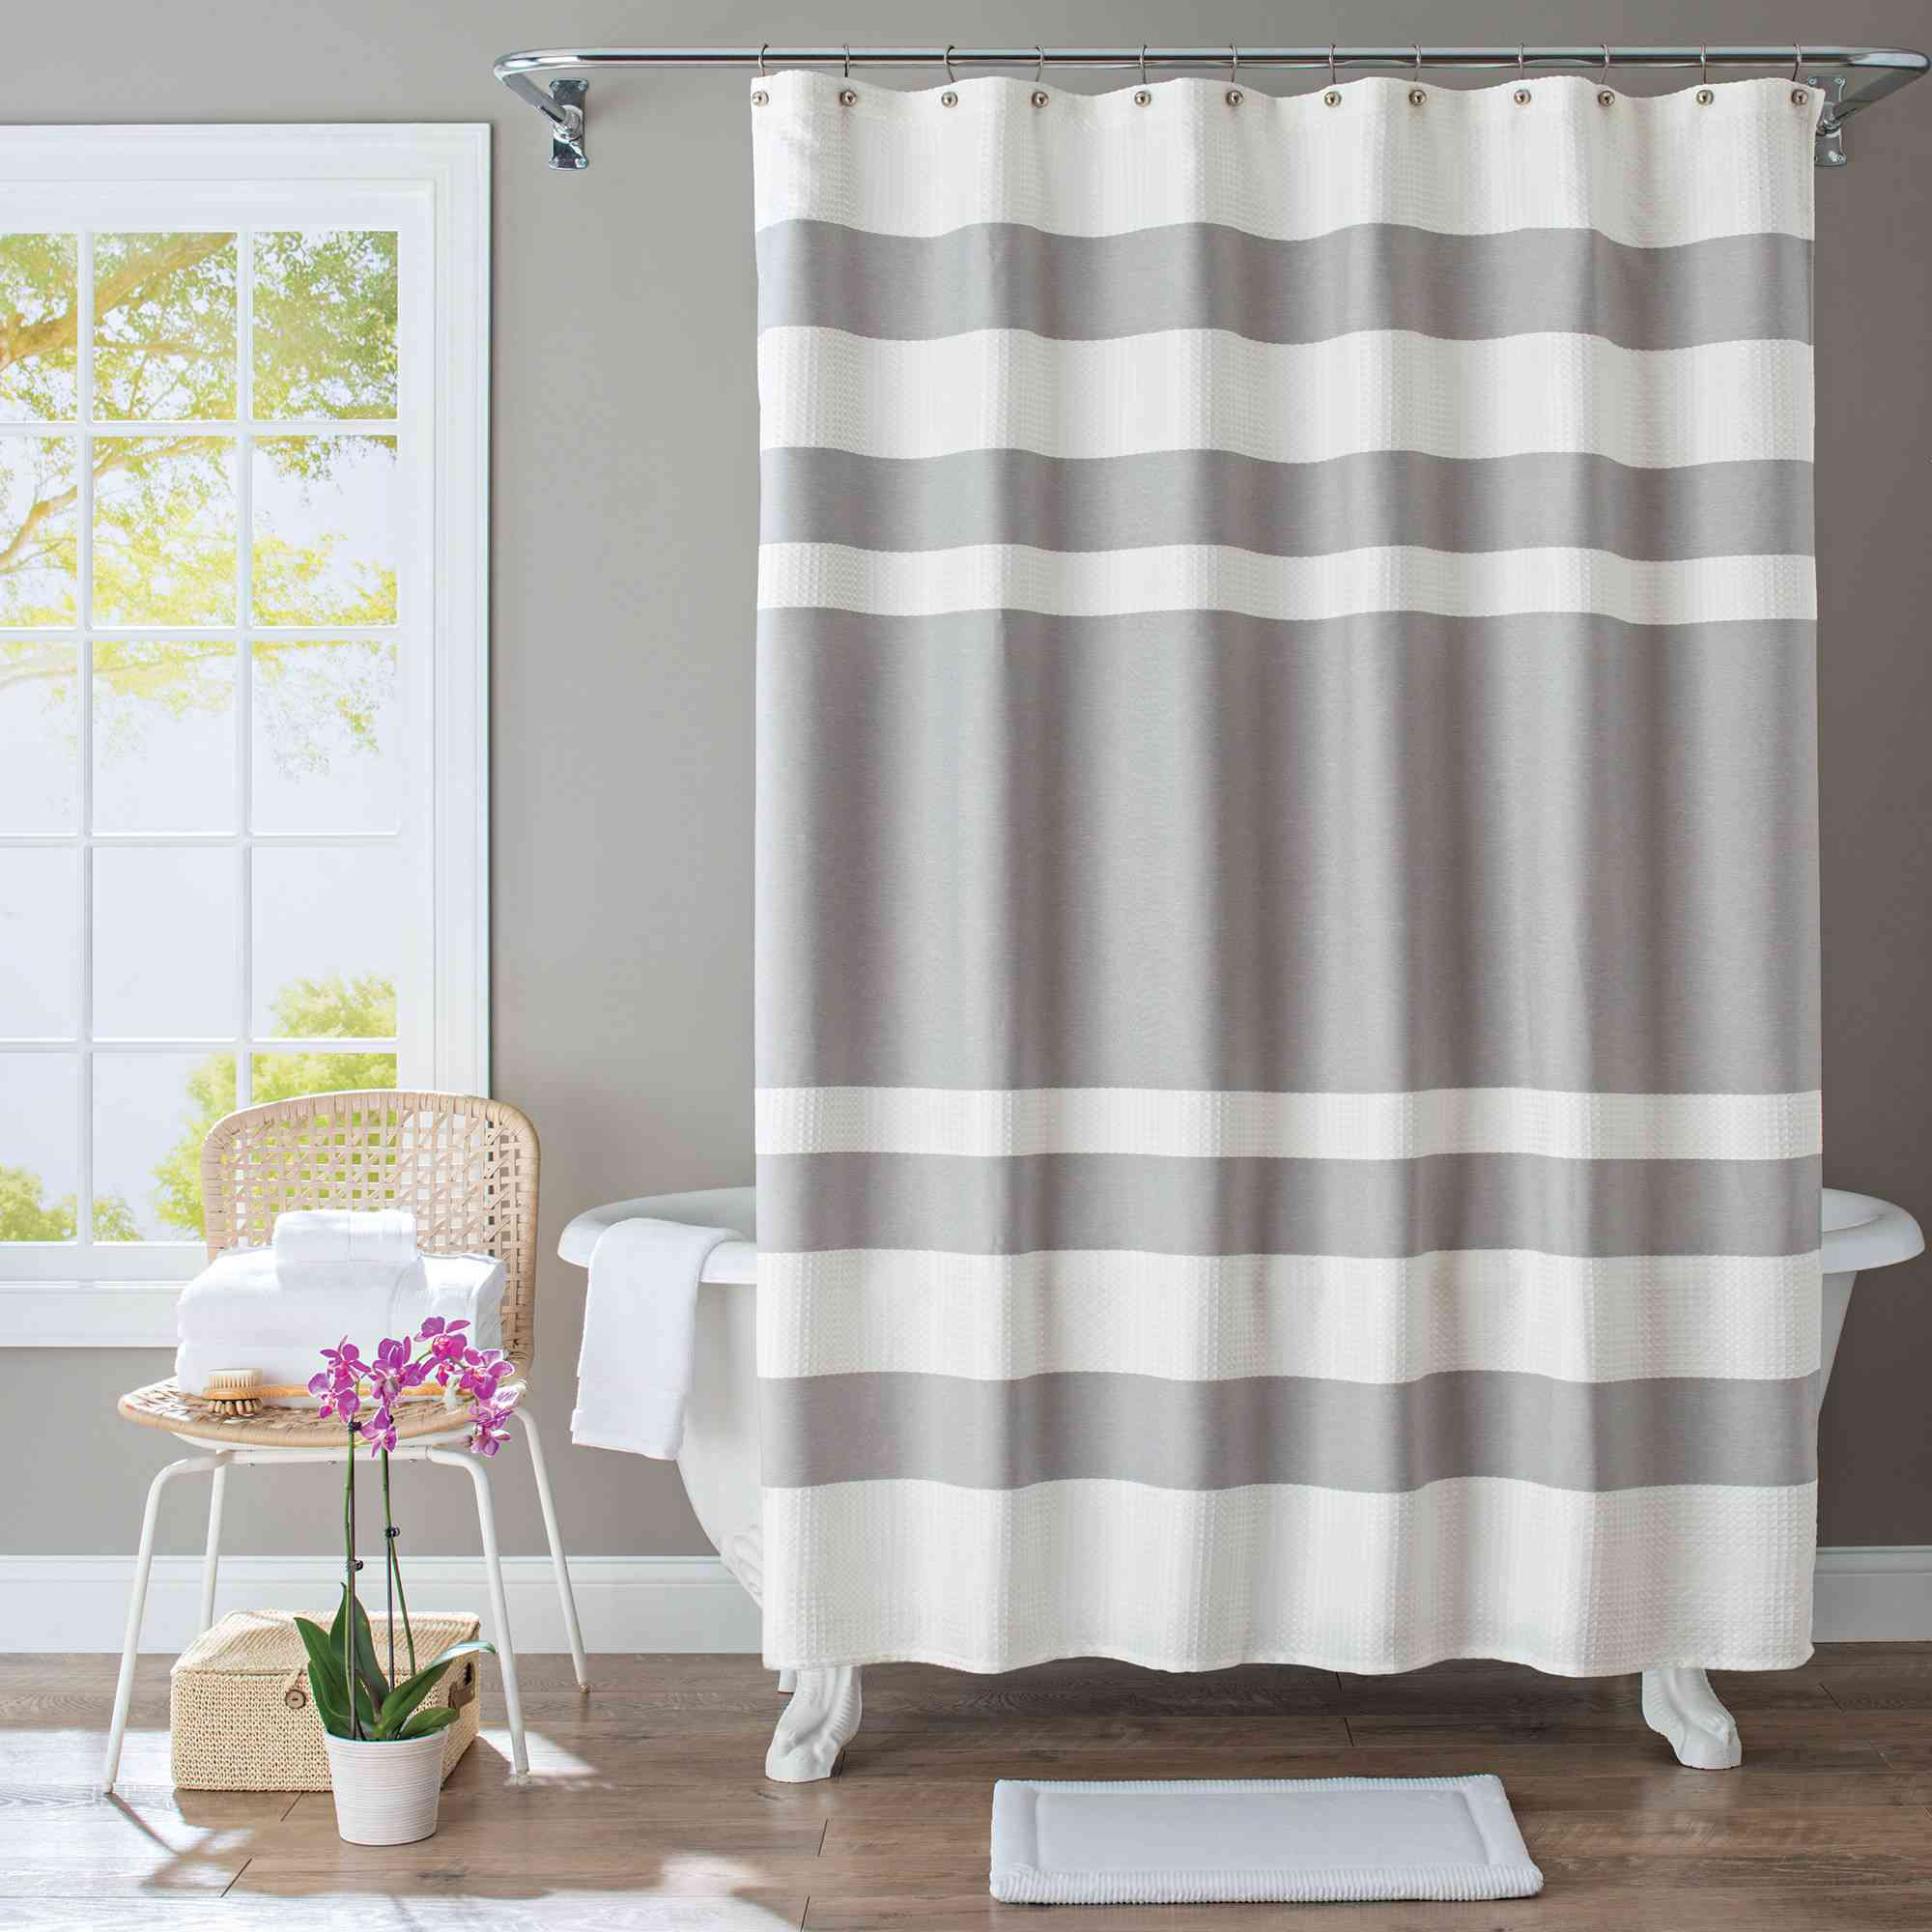 better-homes-shower-curtain